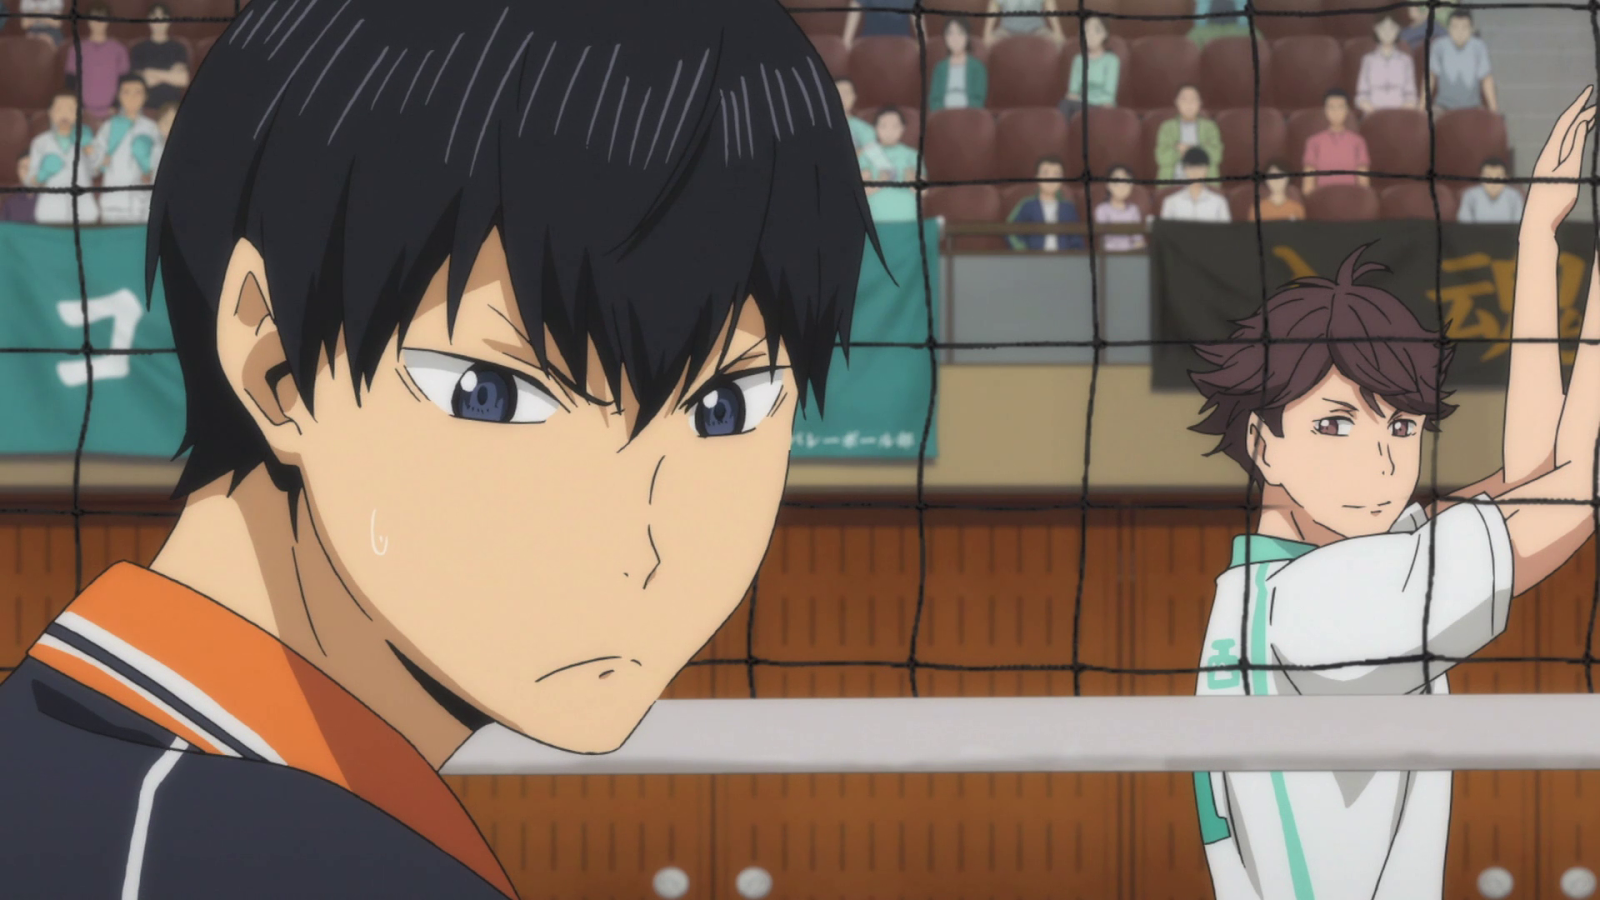 Anime Cinematography Blog: Haikyuu!! Episode 20